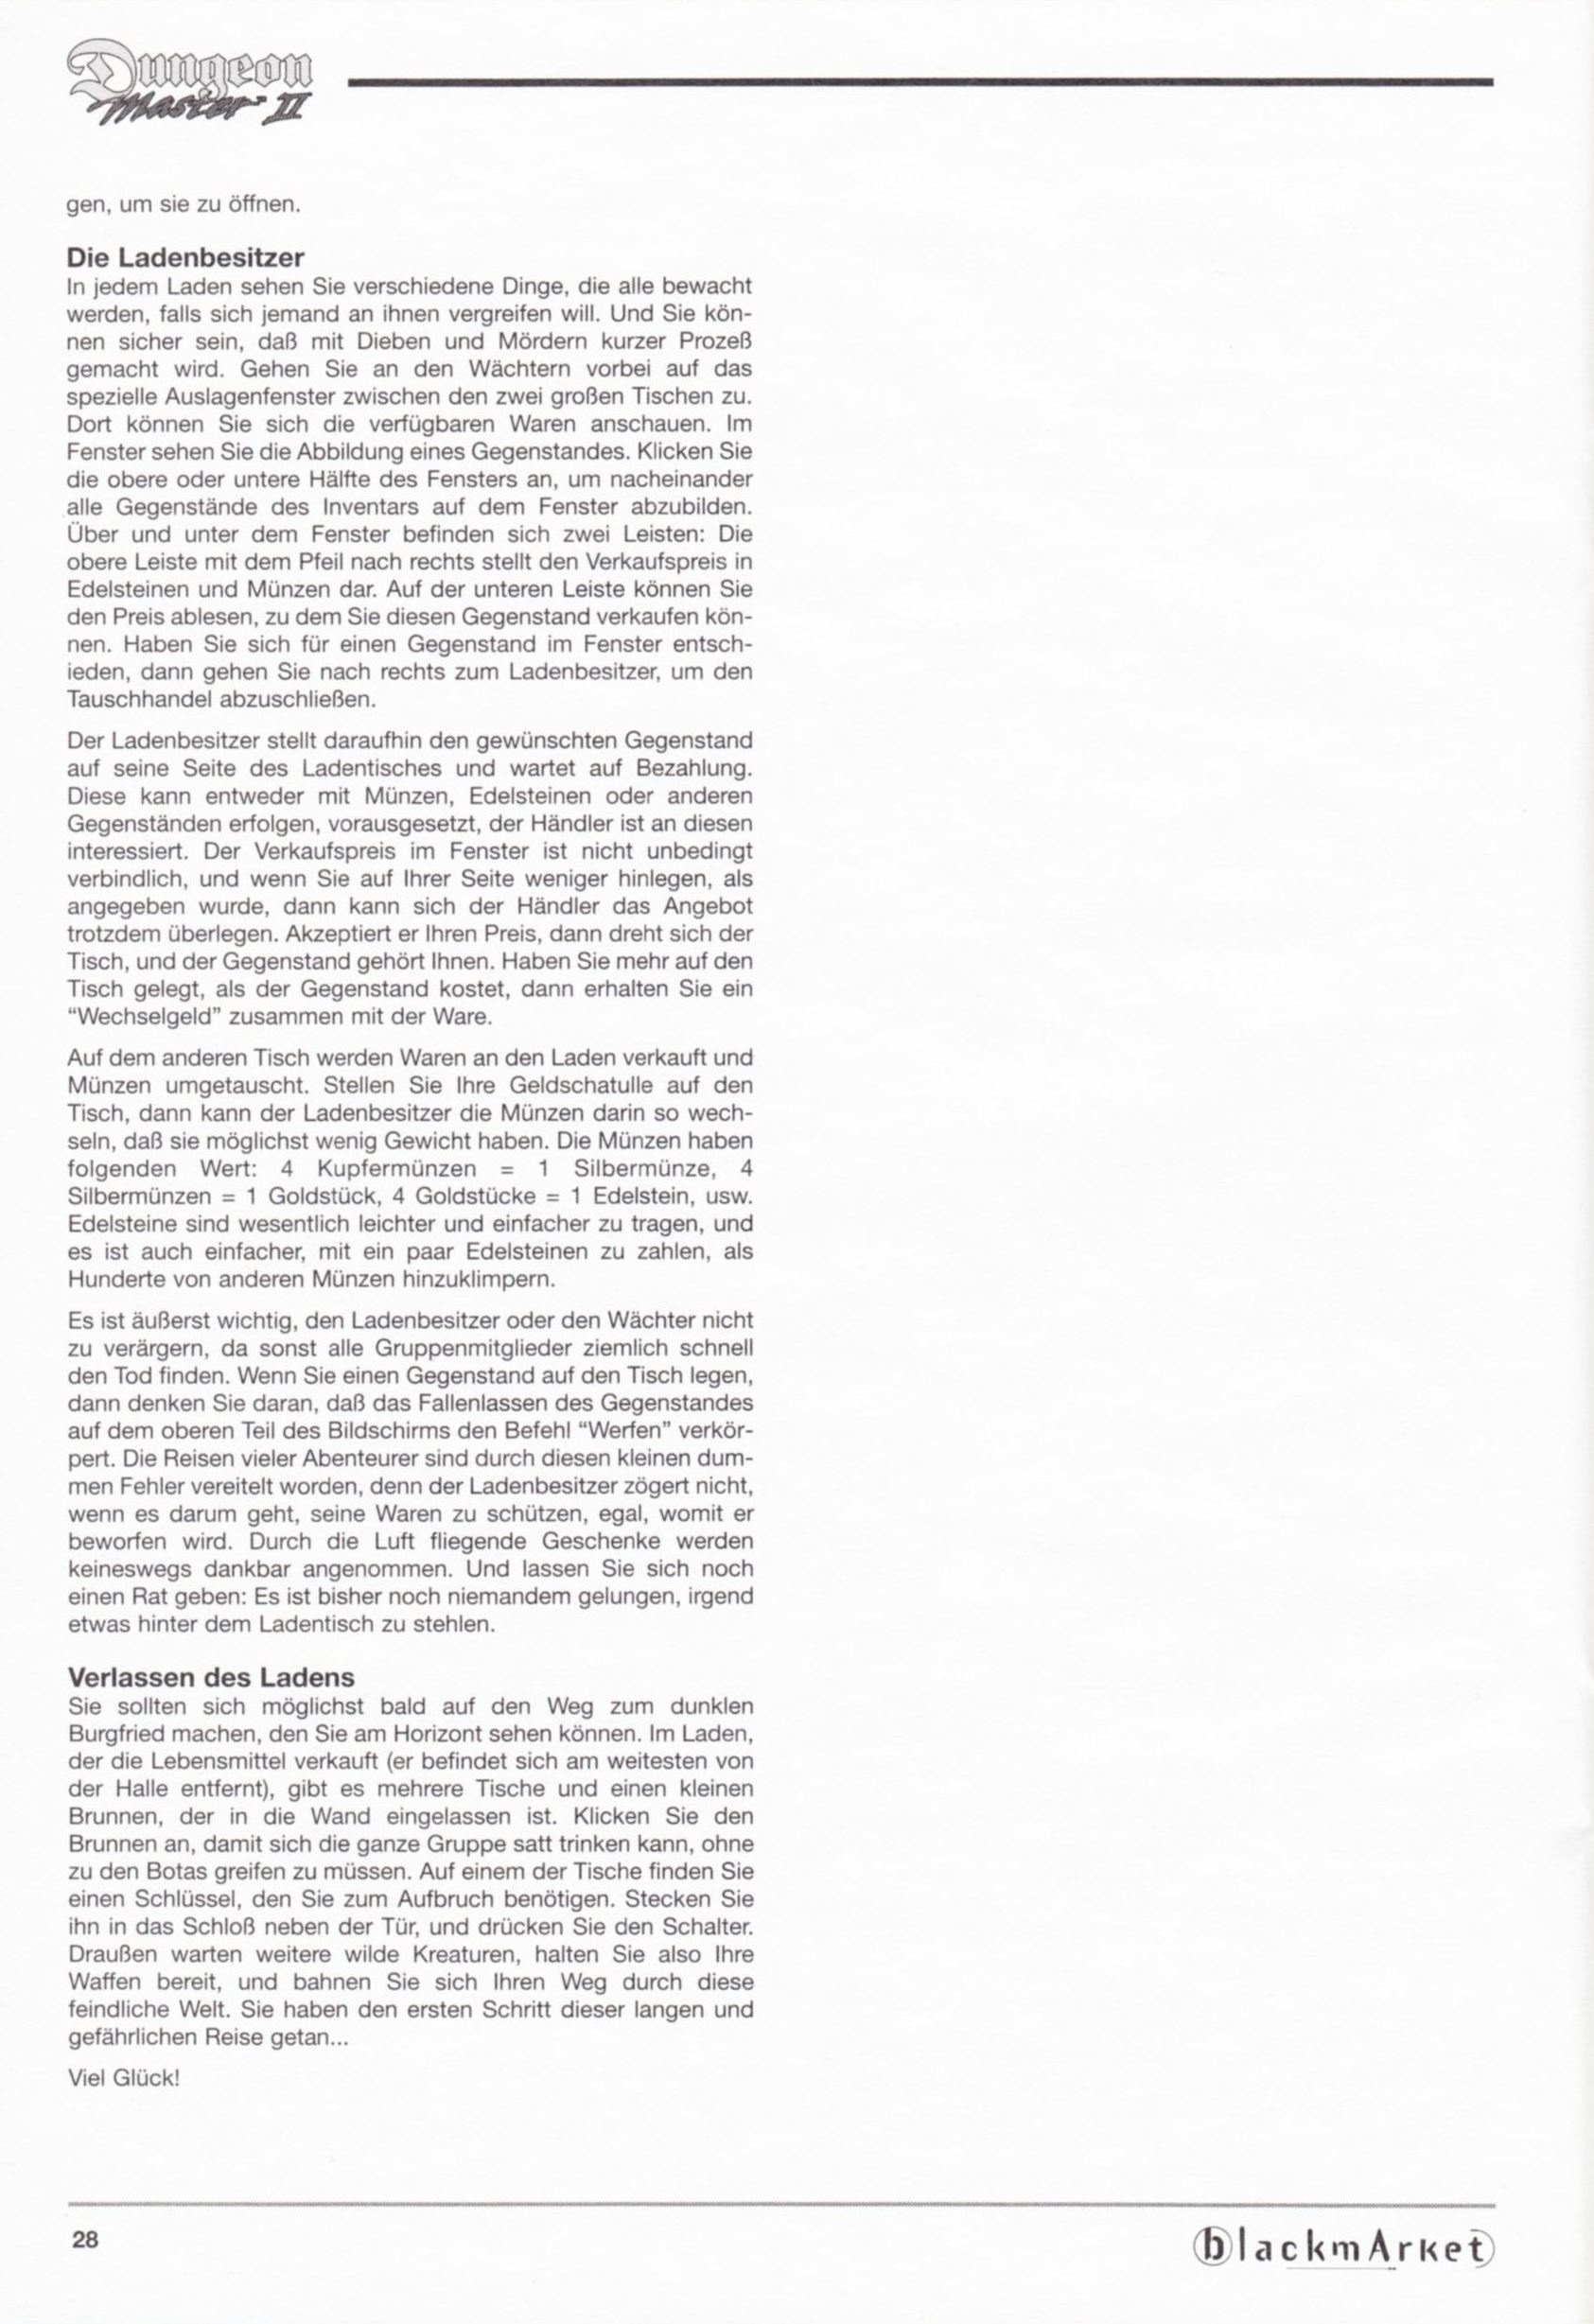 Game - Dungeon Master II - DE - PC - Blackmarket With Manual - Manual - Page 030 - Scan